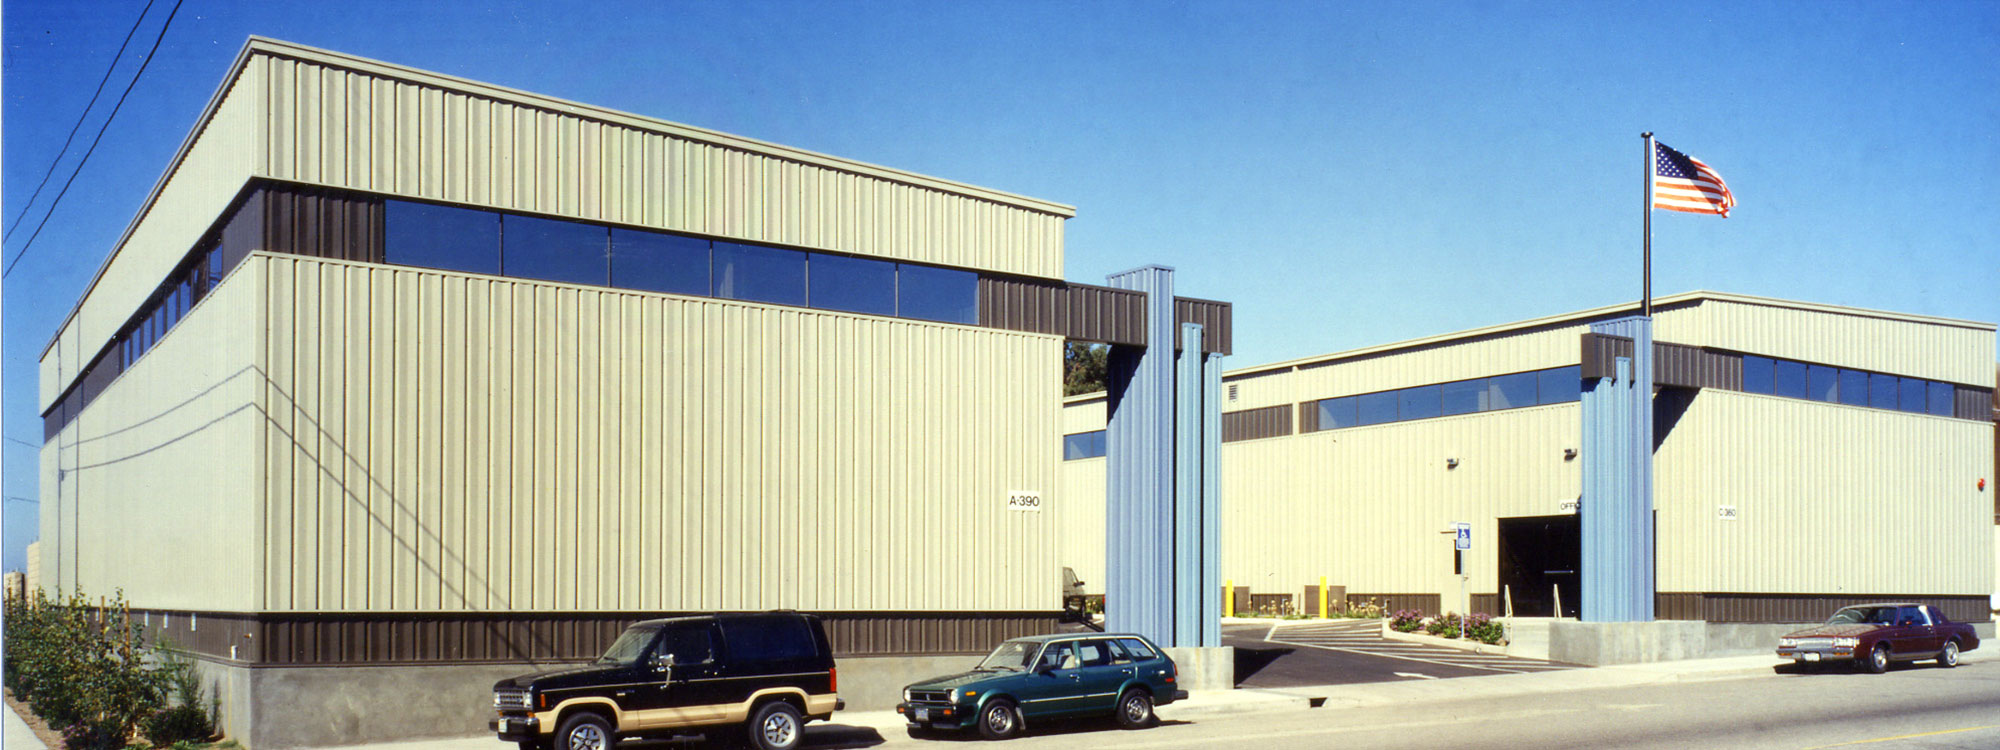 CA Fine Wire - Light Industrial Building Contractor and Builder - JW Design & Construction